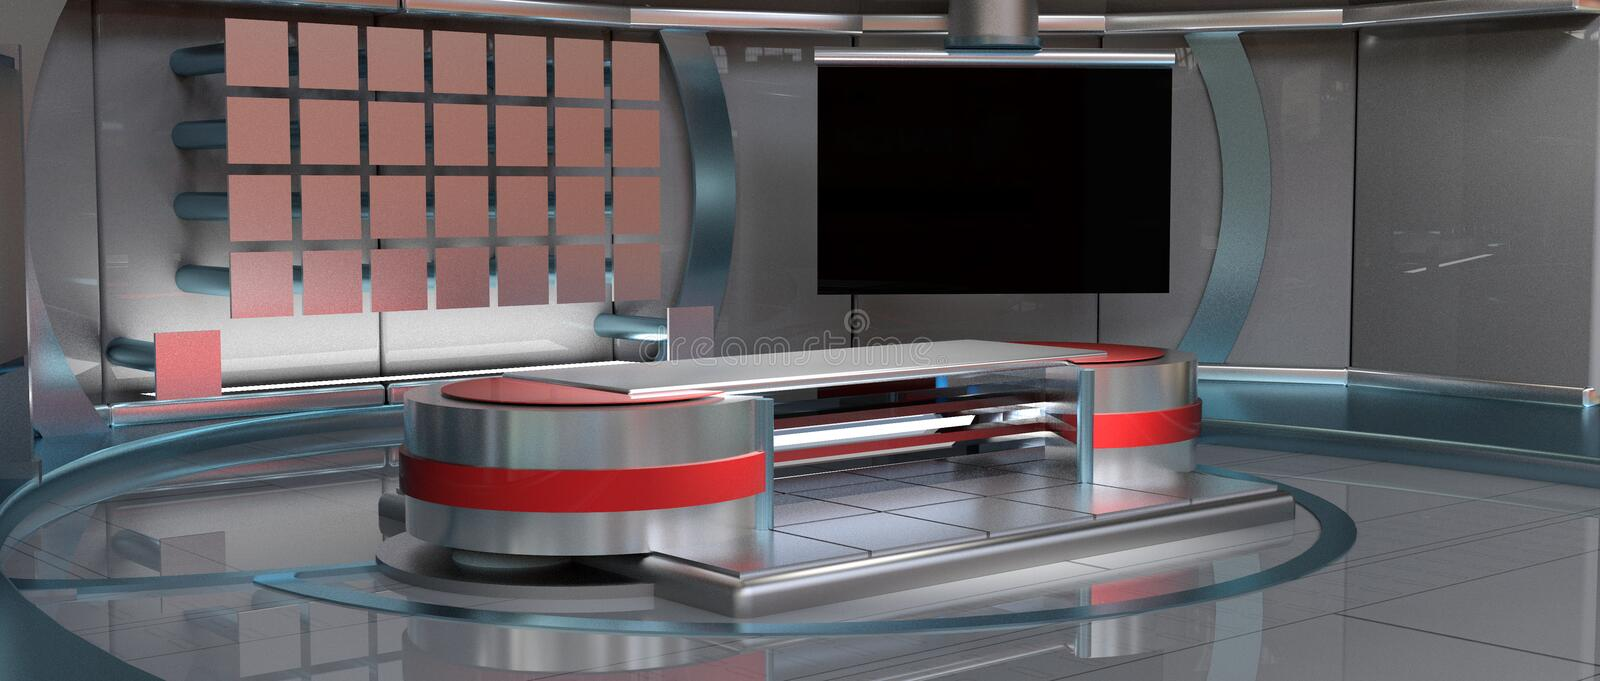 News Virtual Set, left view. CGI 3D rendered news Virtual Set in metallic red, left camera view royalty free illustration